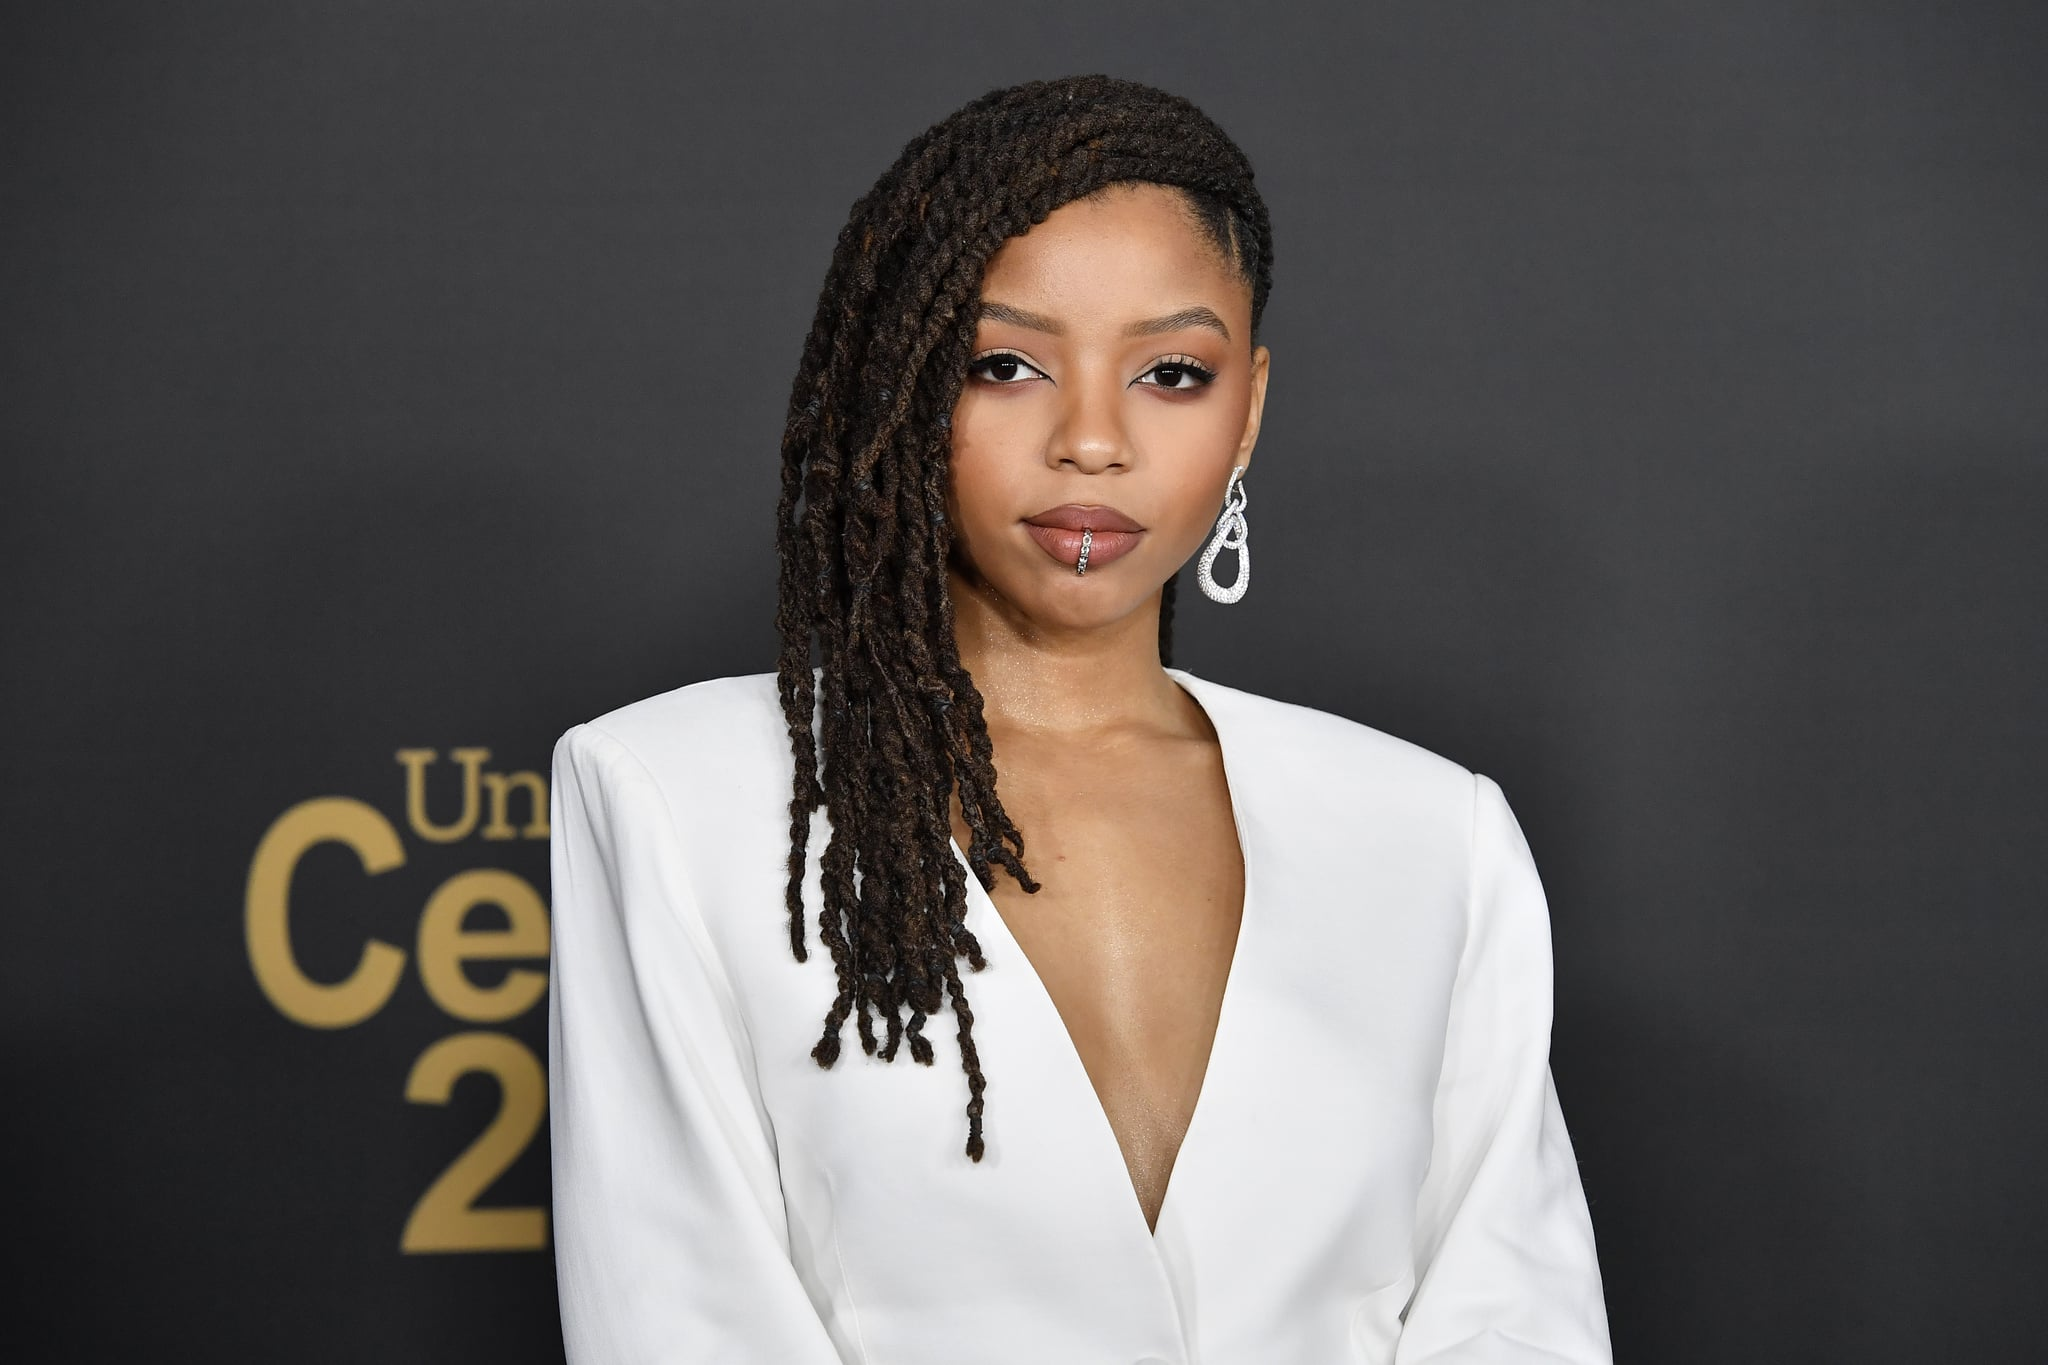 PASADENA, CALIFORNIA - FEBRUARY 22: Chloe Bailey attends the 51st NAACP Image Awards, Presented by BET, at Pasadena Civic Auditorium on February 22, 2020 in Pasadena, California. (Photo by Frazer Harrison/Getty Images)